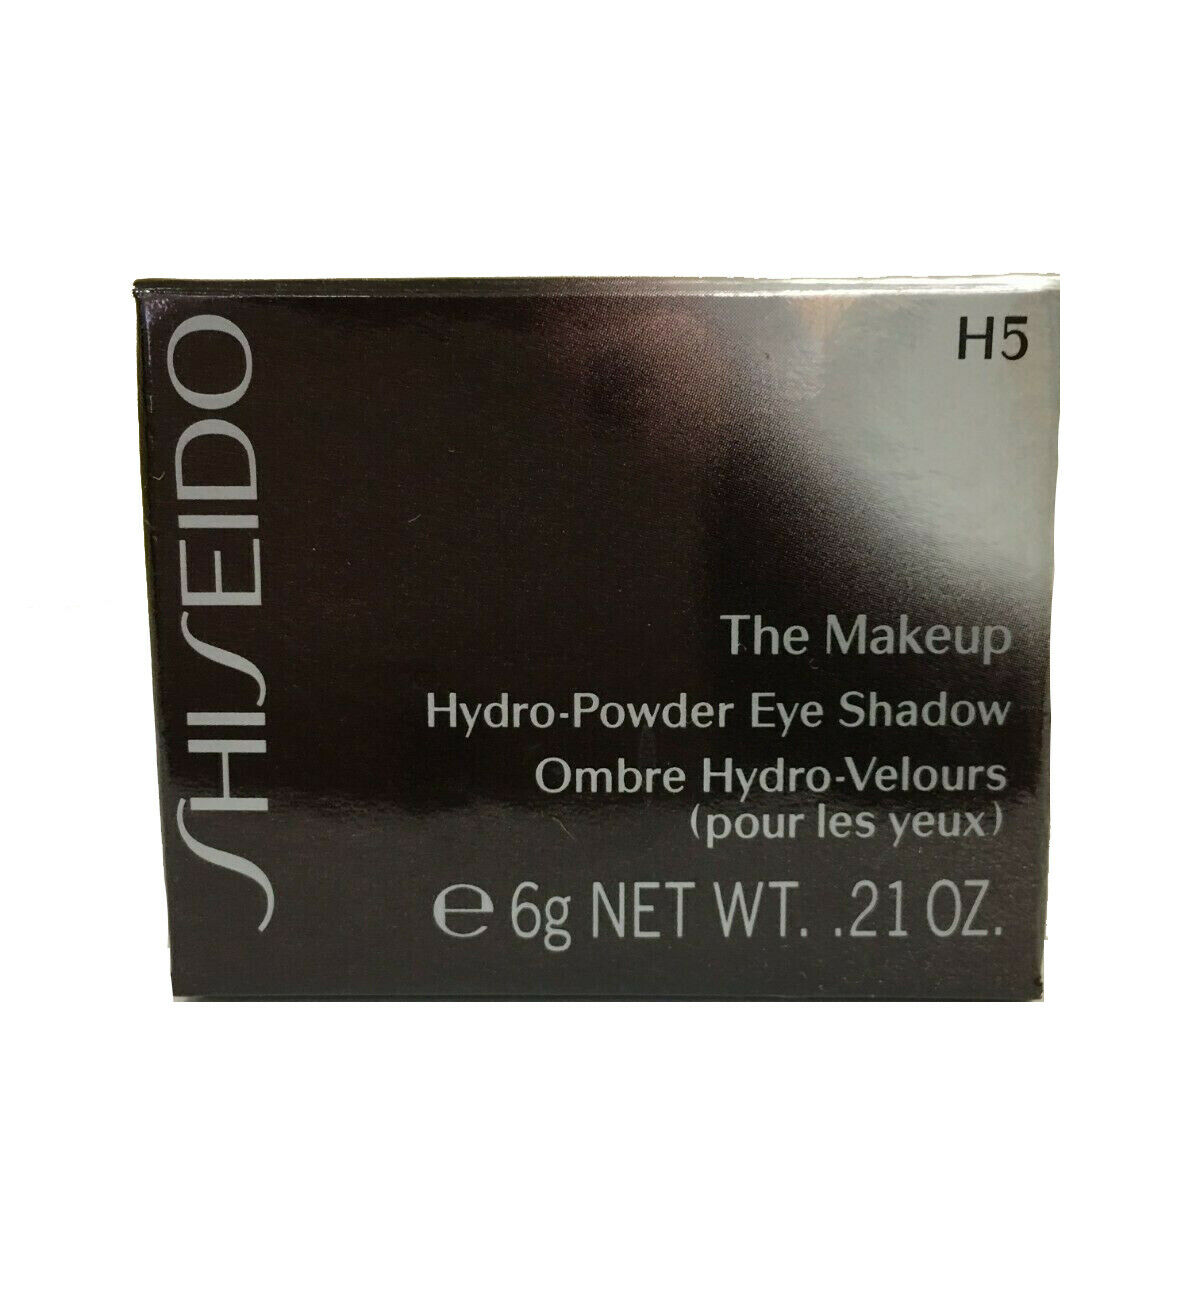 SHISEIDO - THE MAKEUP - Hydro-Powder Eye Shadow 6gr/.21oz, B